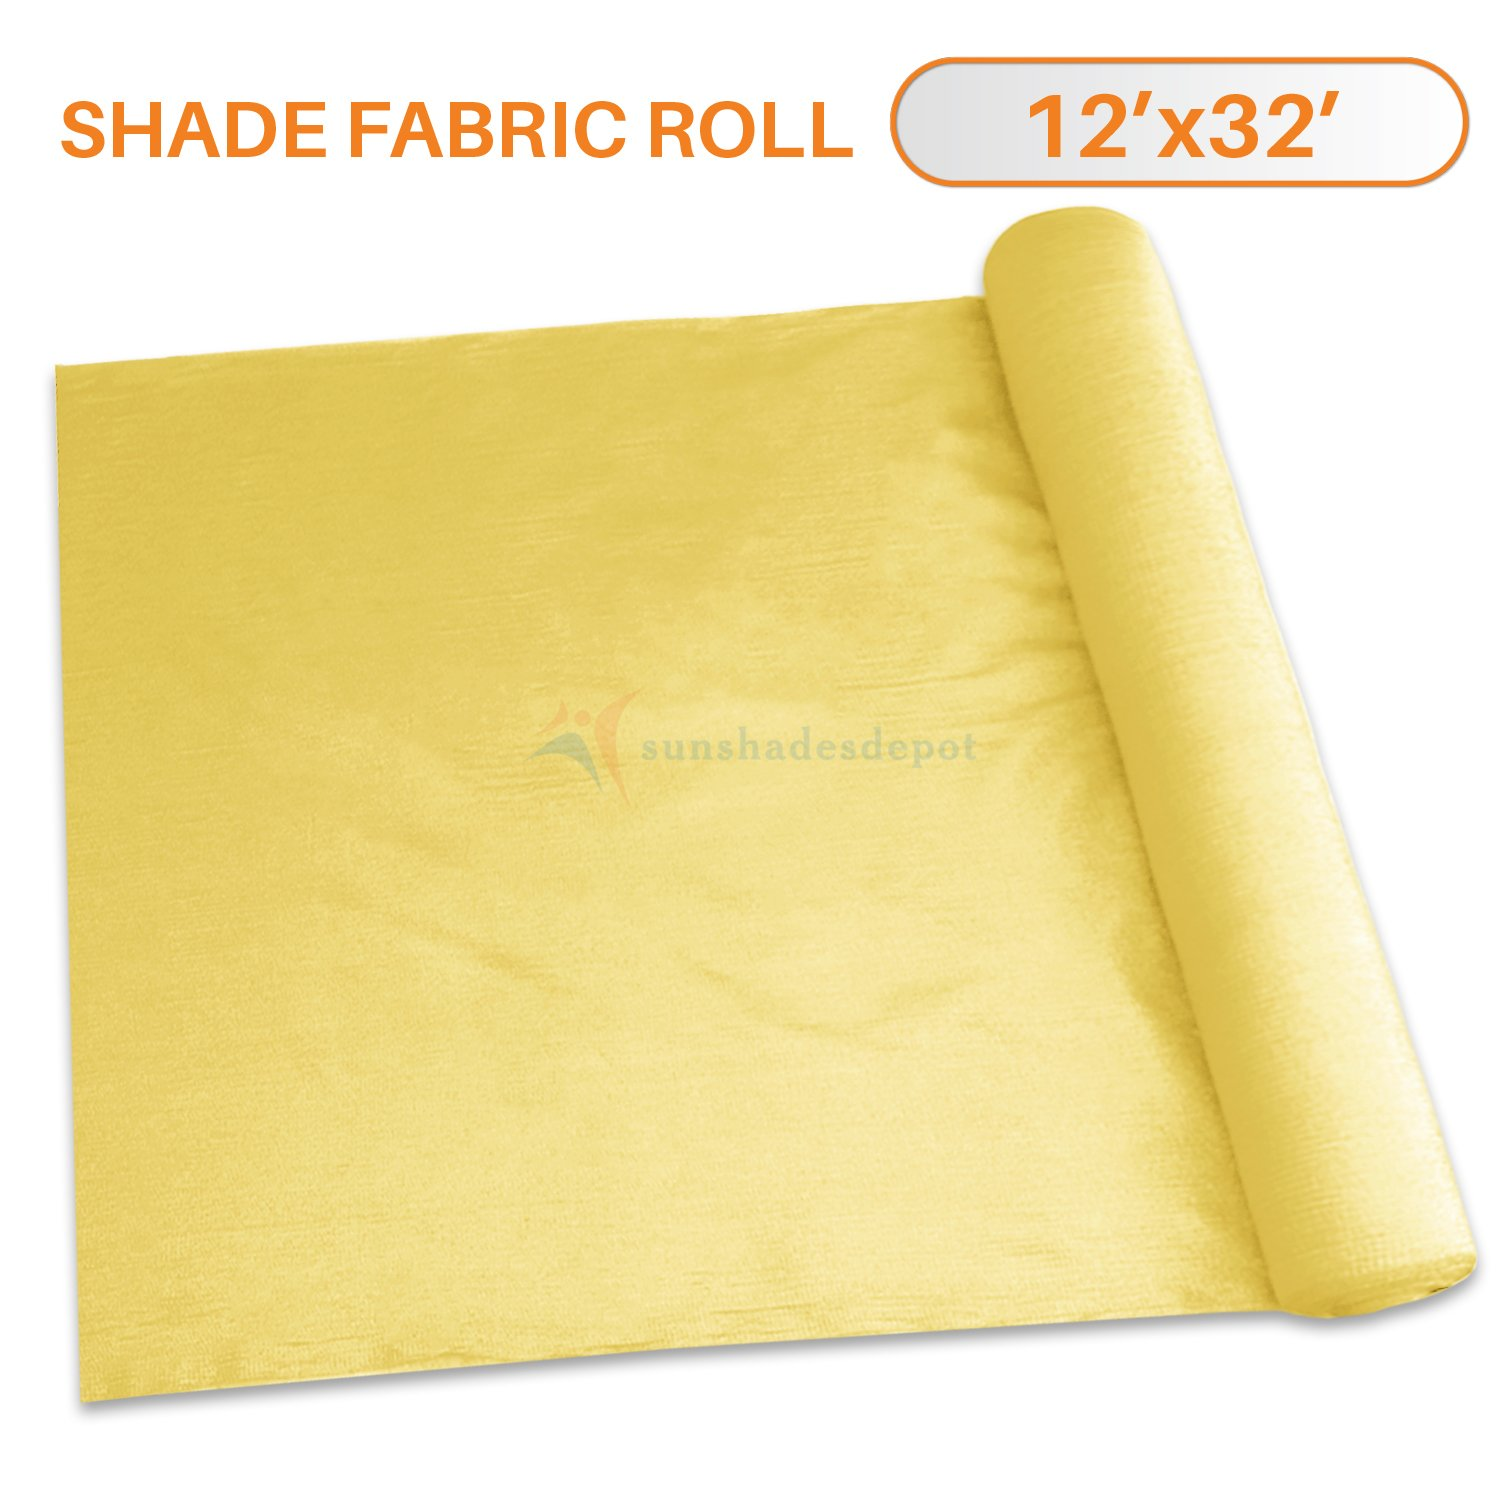 TANG Sunshades Depot 12'x32' Shade Cloth 180 GSM HDPE Canary Yellow Fabric Roll Up to 95% Blockage UV Resistant Mesh Net for Outdoor Backyard Garden Plant Barn Greenhouse